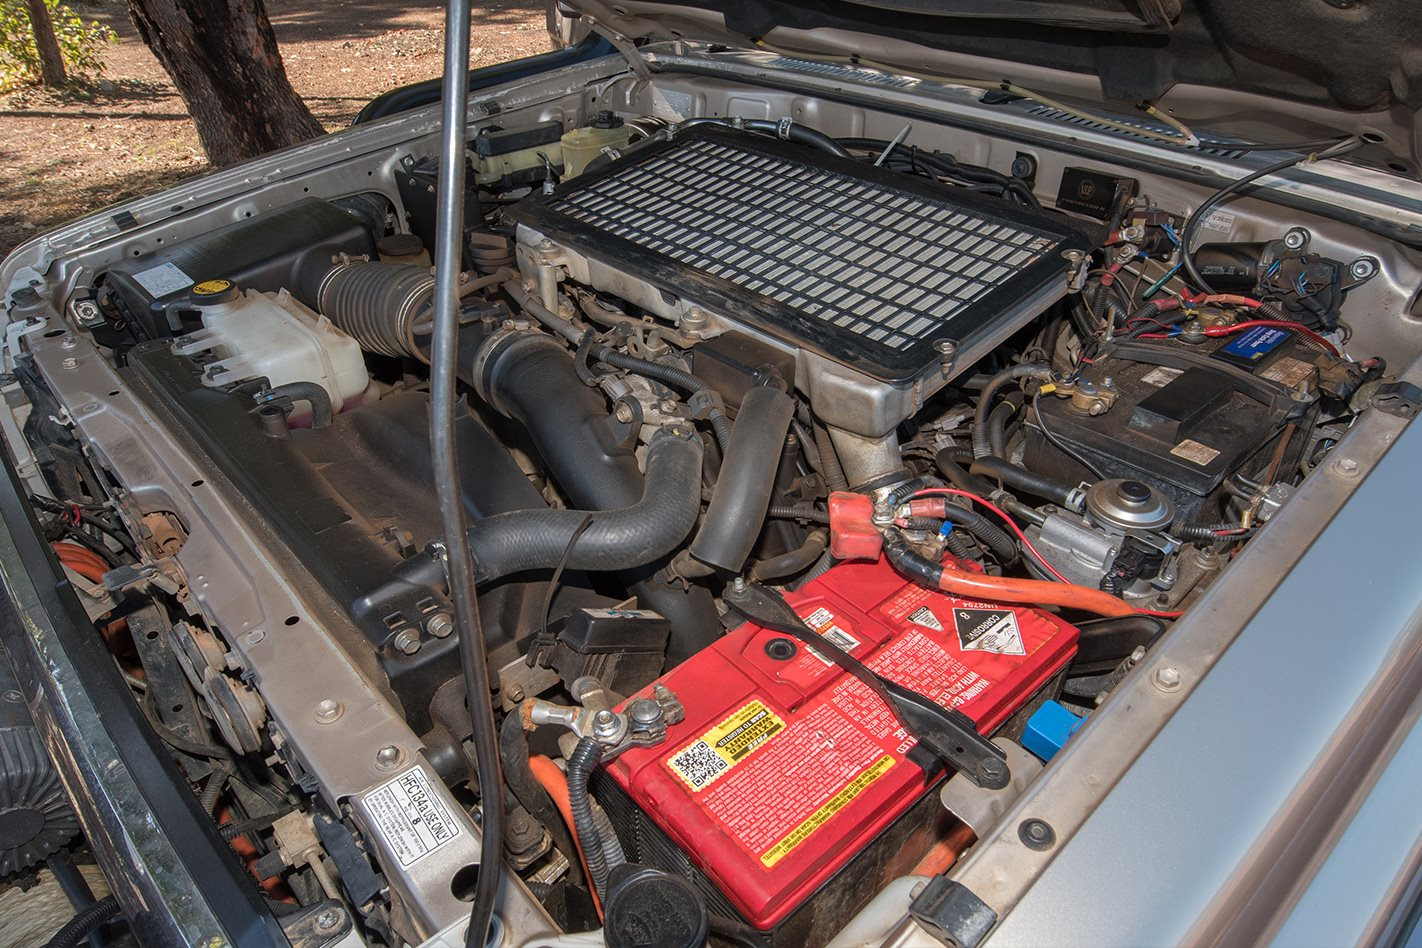 2008 Toyota Land Cruiser 76 GXL V8 engine